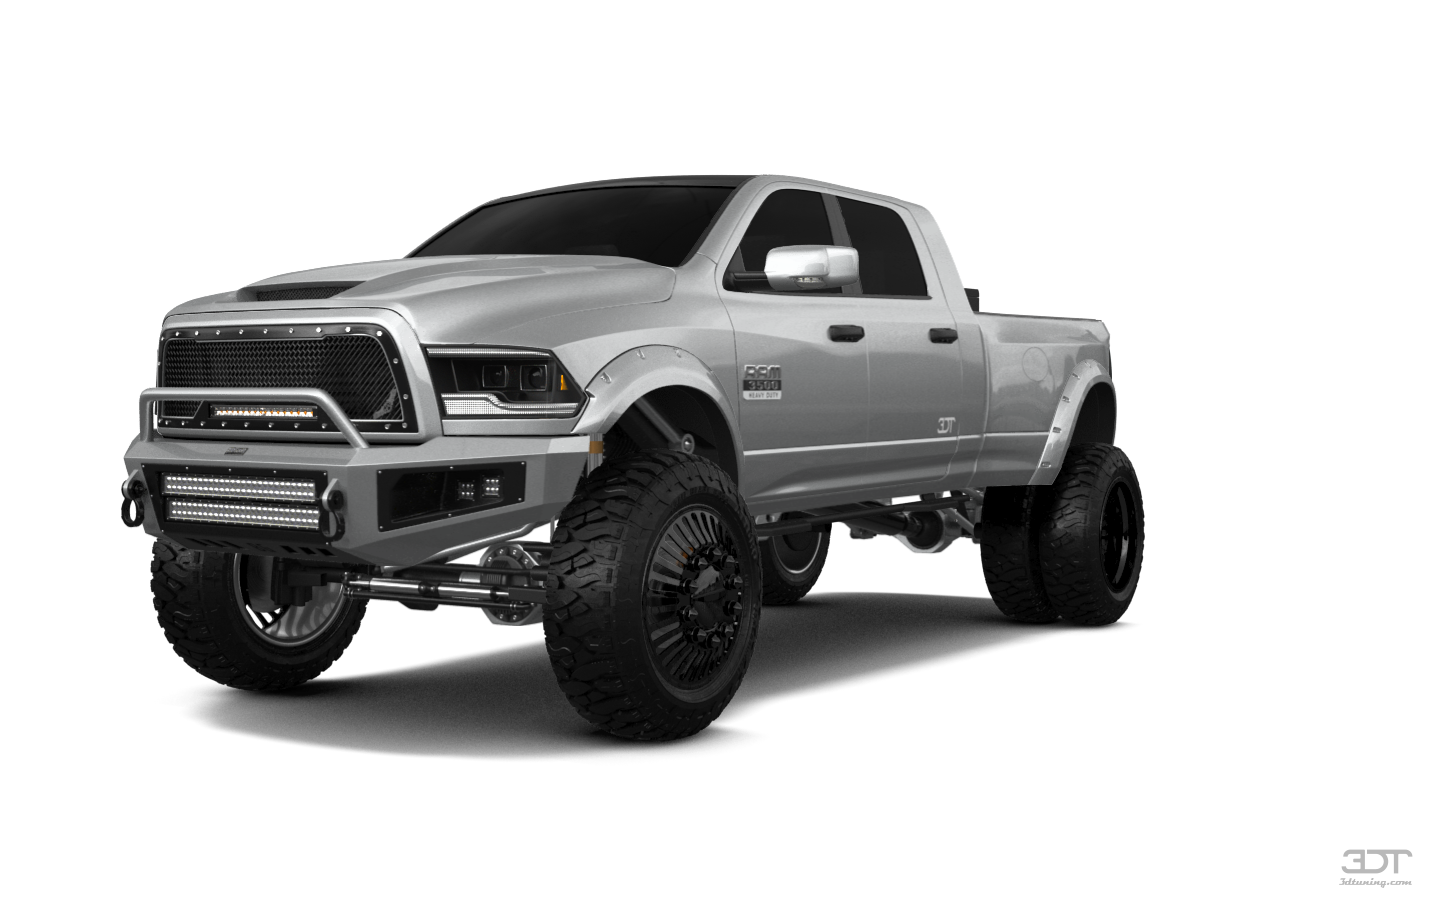 Dodge Ram 3500 4 Door Truck 2014 tuning